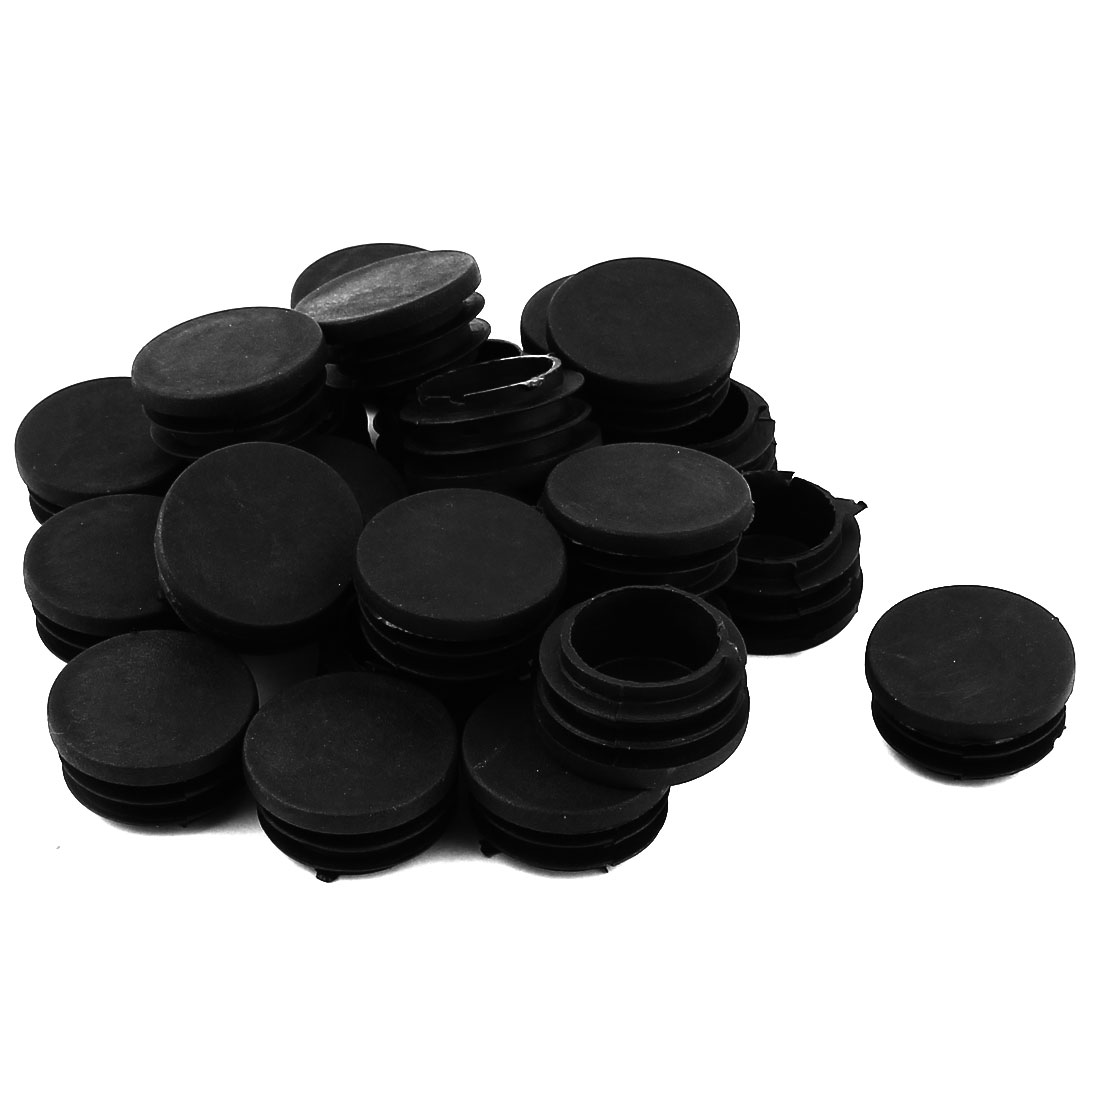 "Chair Table 1 1/4"" Round Shape Plastic Blanking End Cap Tubing Tube Insert 24Pcs"